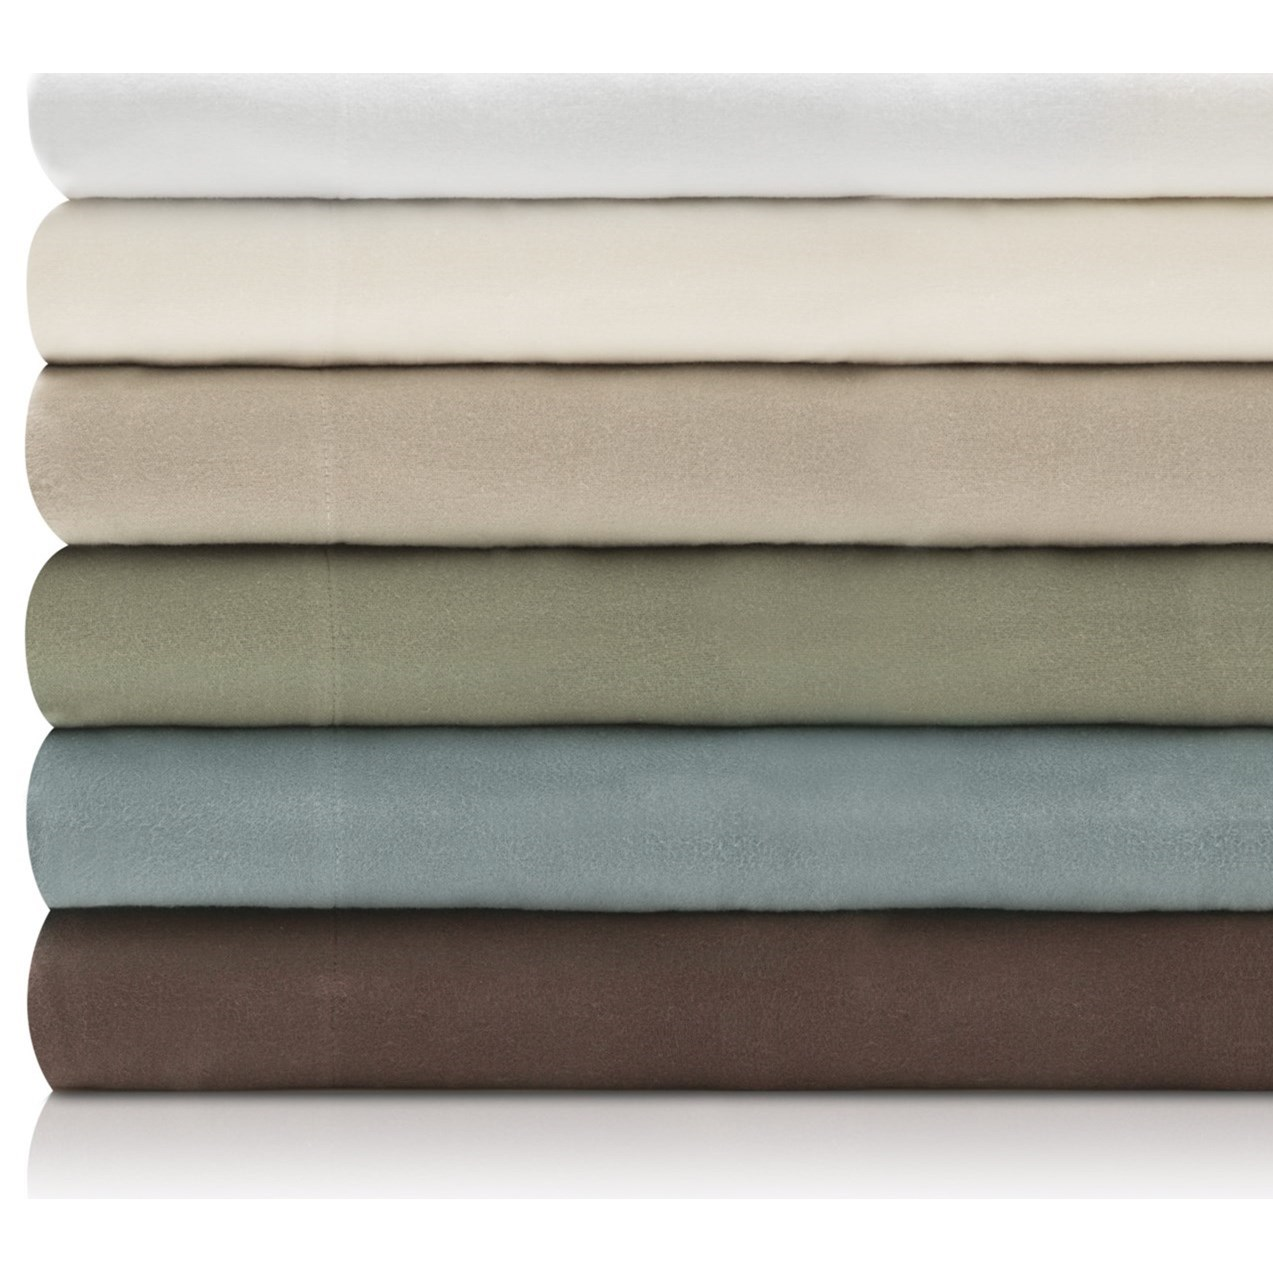 Malouf Portuguese Flannel Split King Woven™ Portuguese Flannel Sheet S - Item Number: WO19SKIVFS